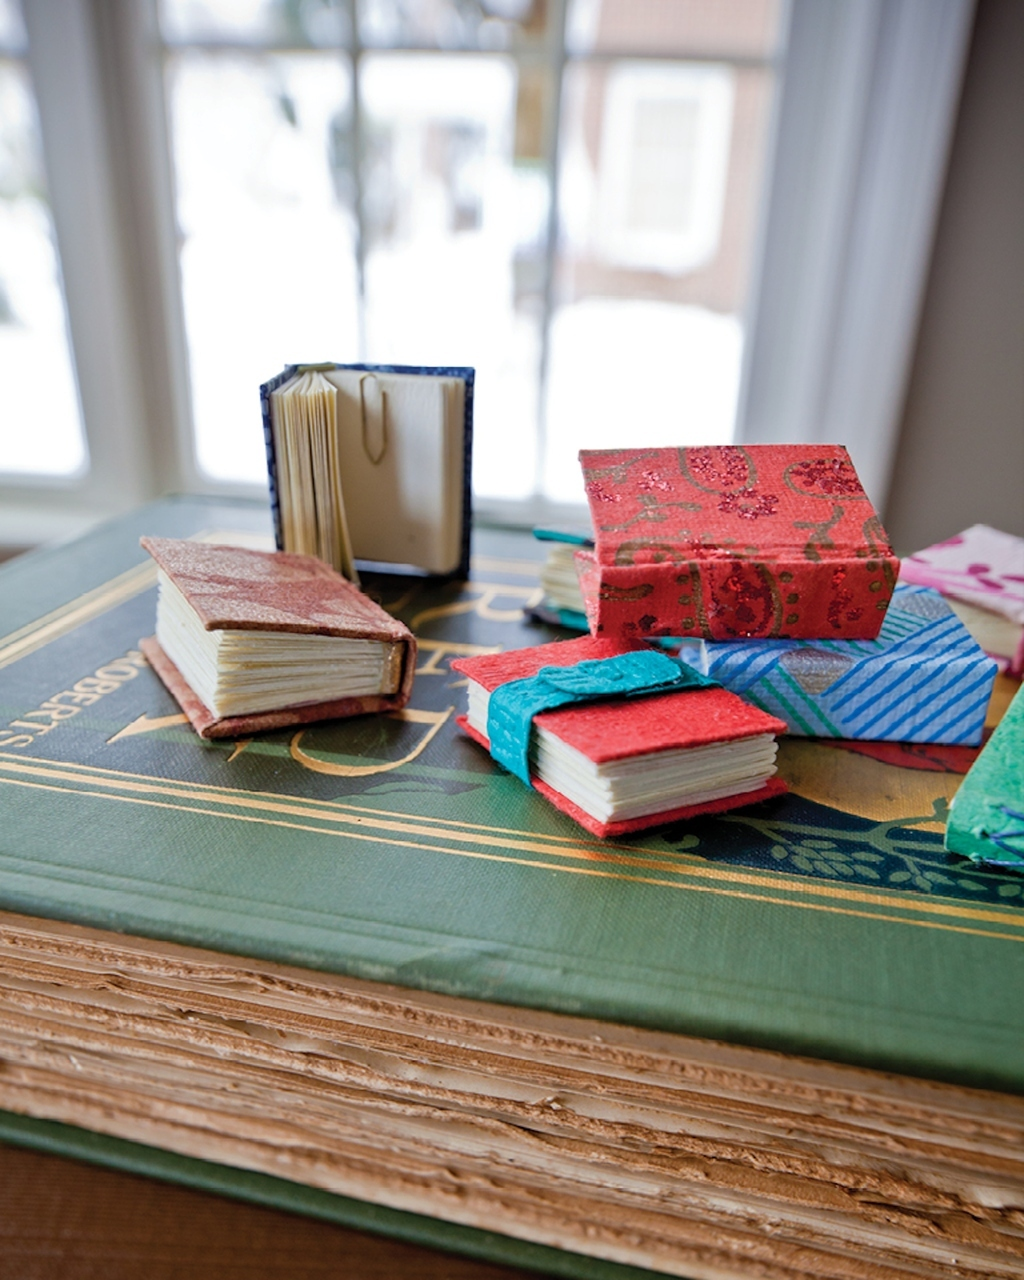 18 Miniature Craft Projects That Will Melt Your Heart